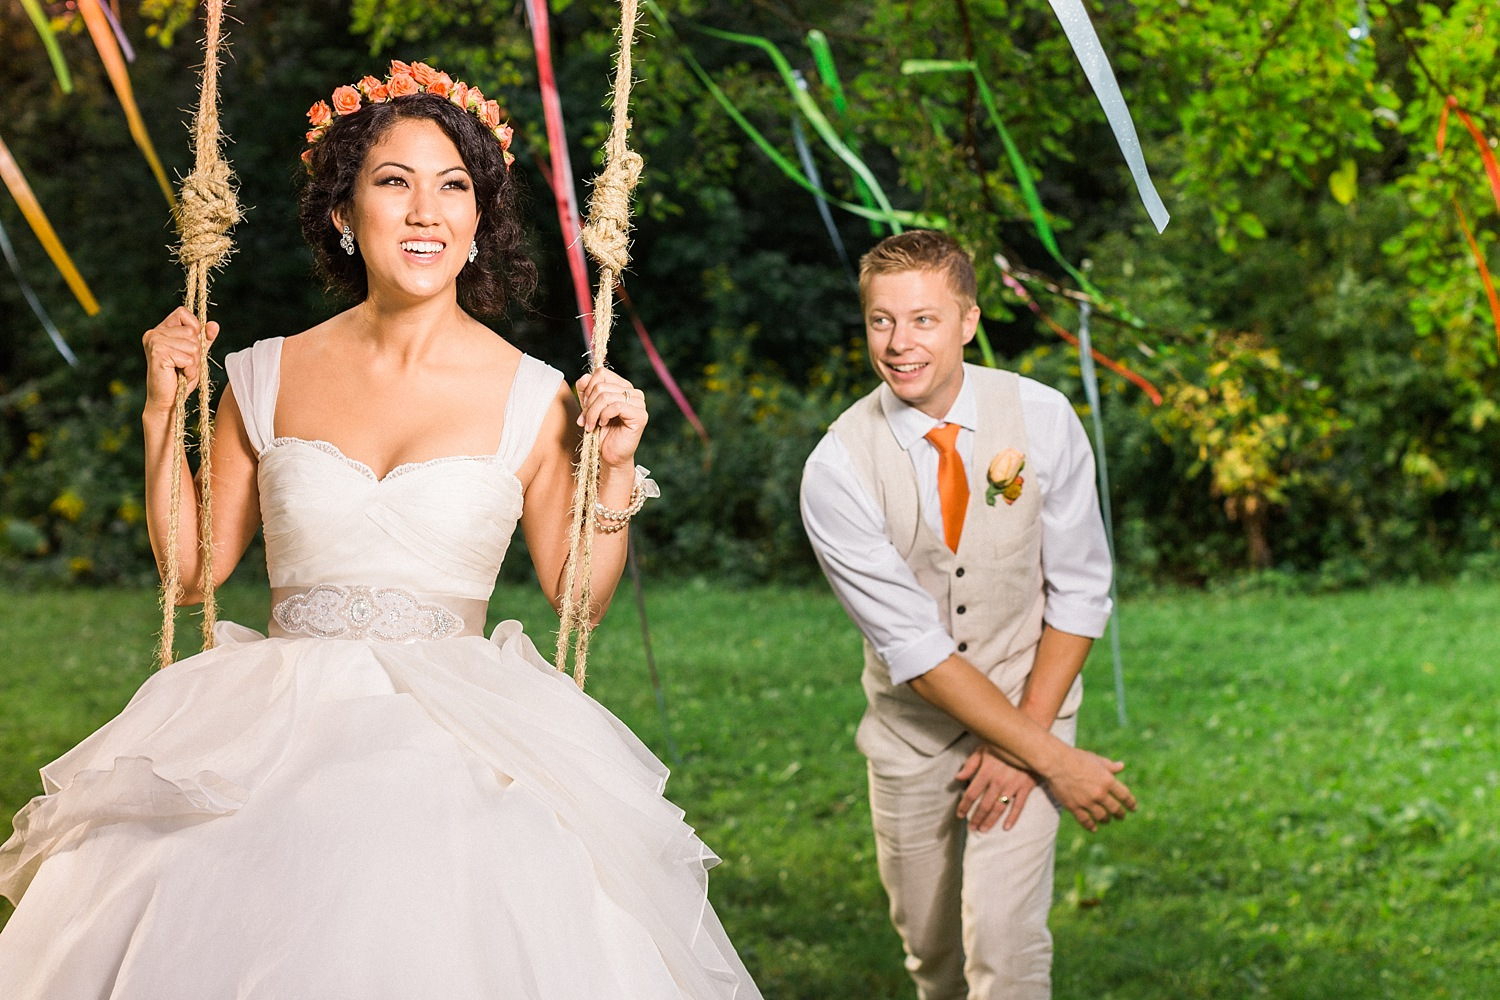 Swing|Garbe|Wedding|JRClubb-1.jpg